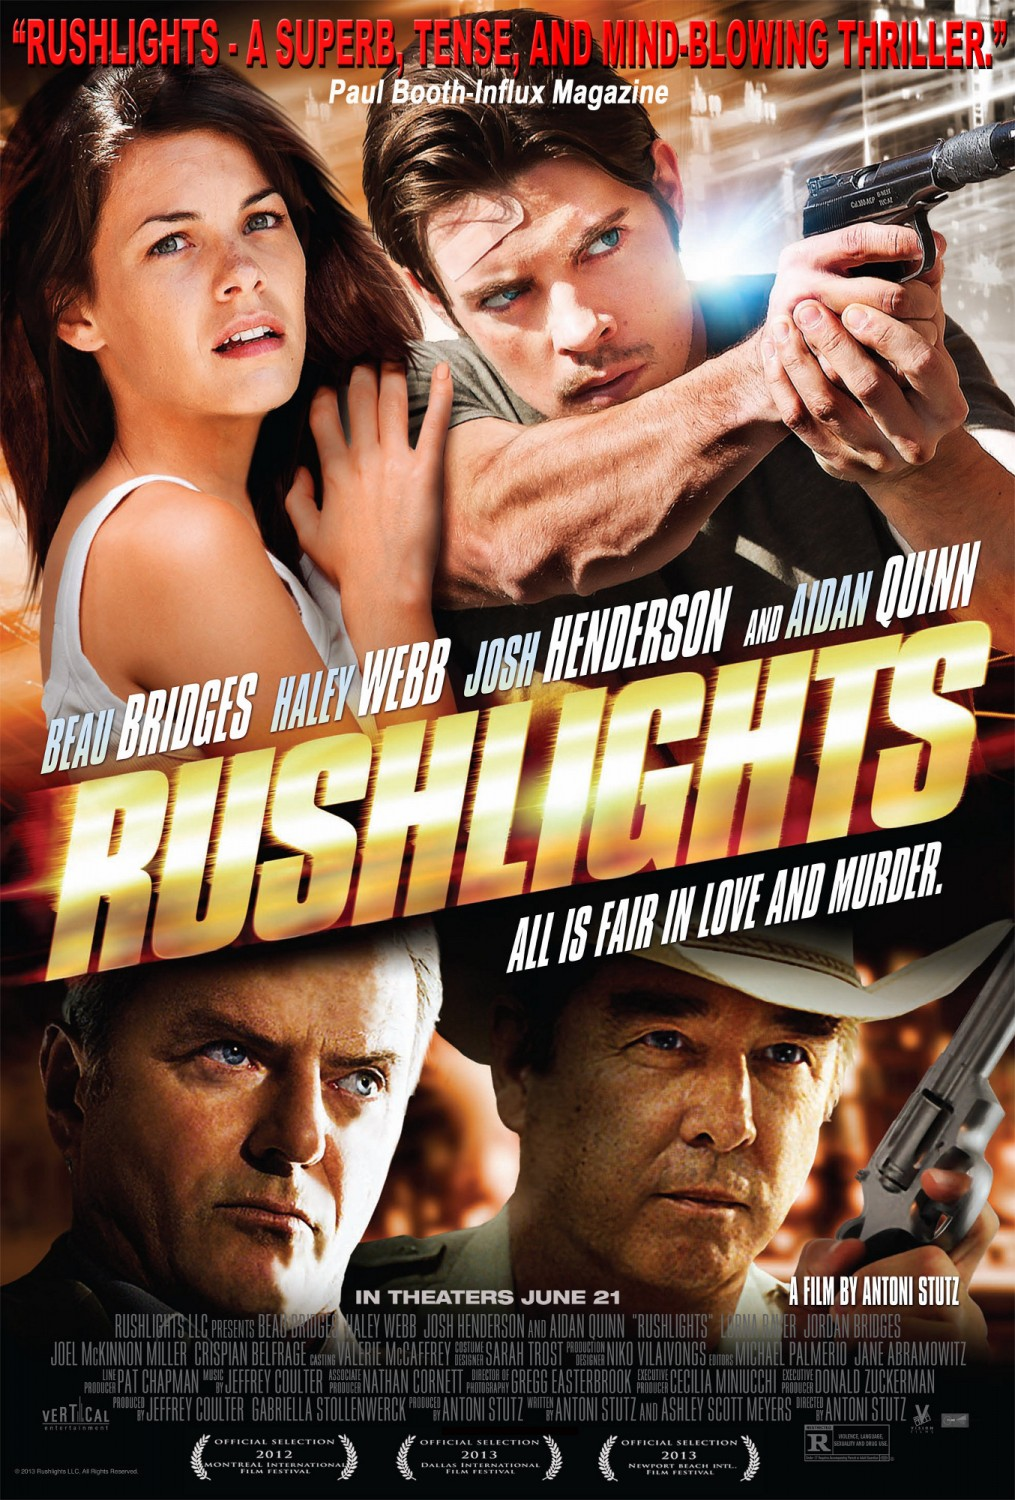 11. Rushlights (blur credit).jpg